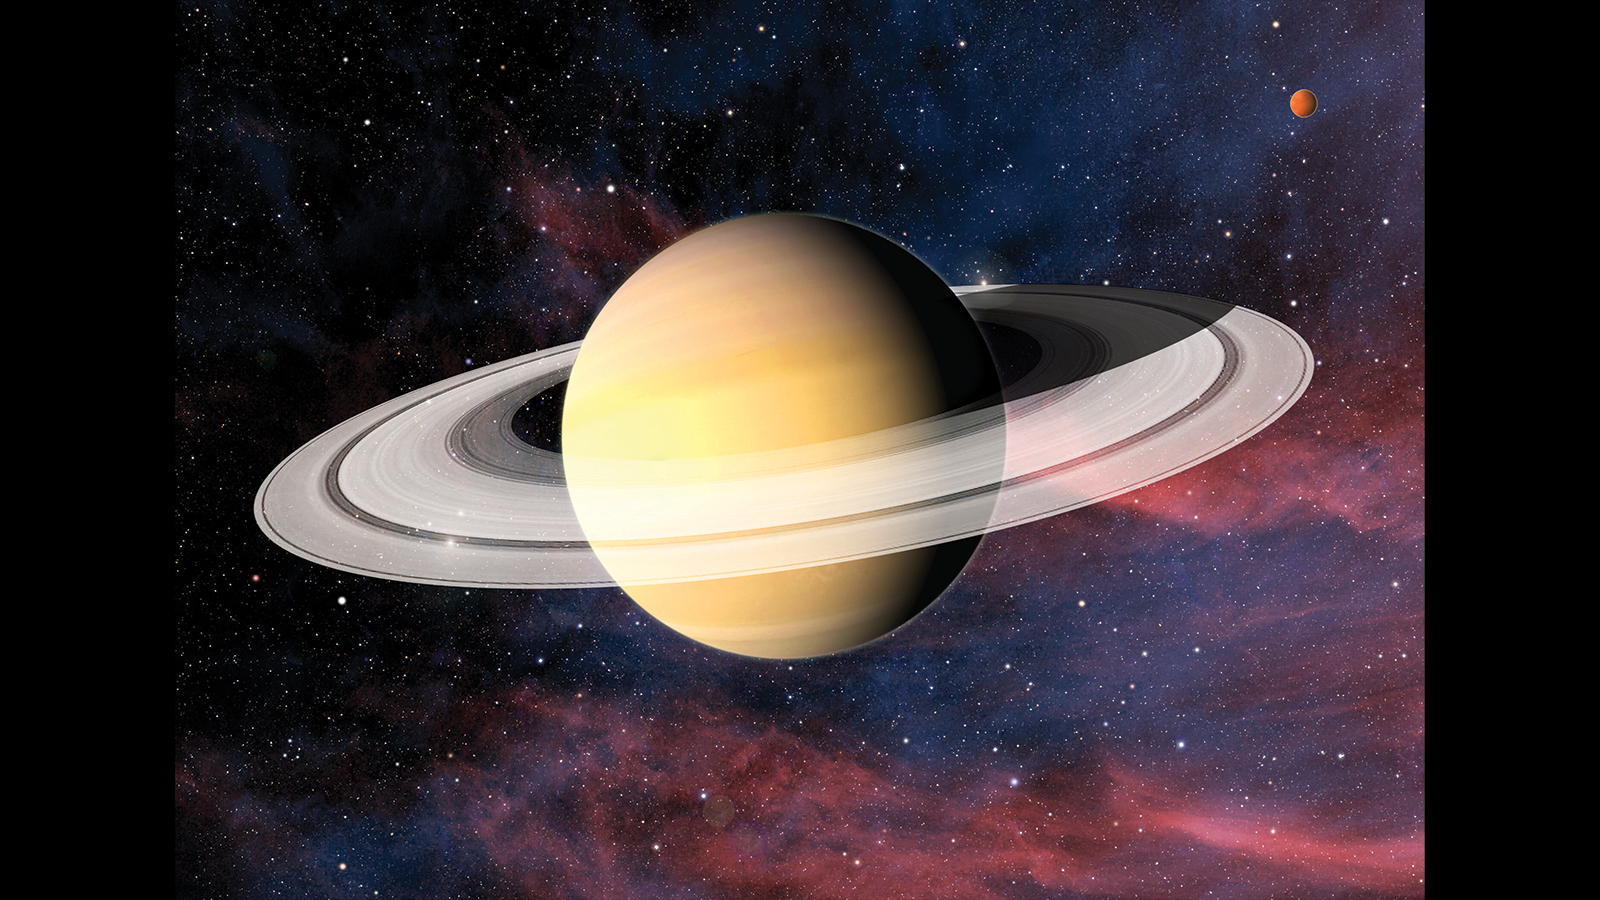 High Resolution Wallpaper | Saturn 1600x900 px